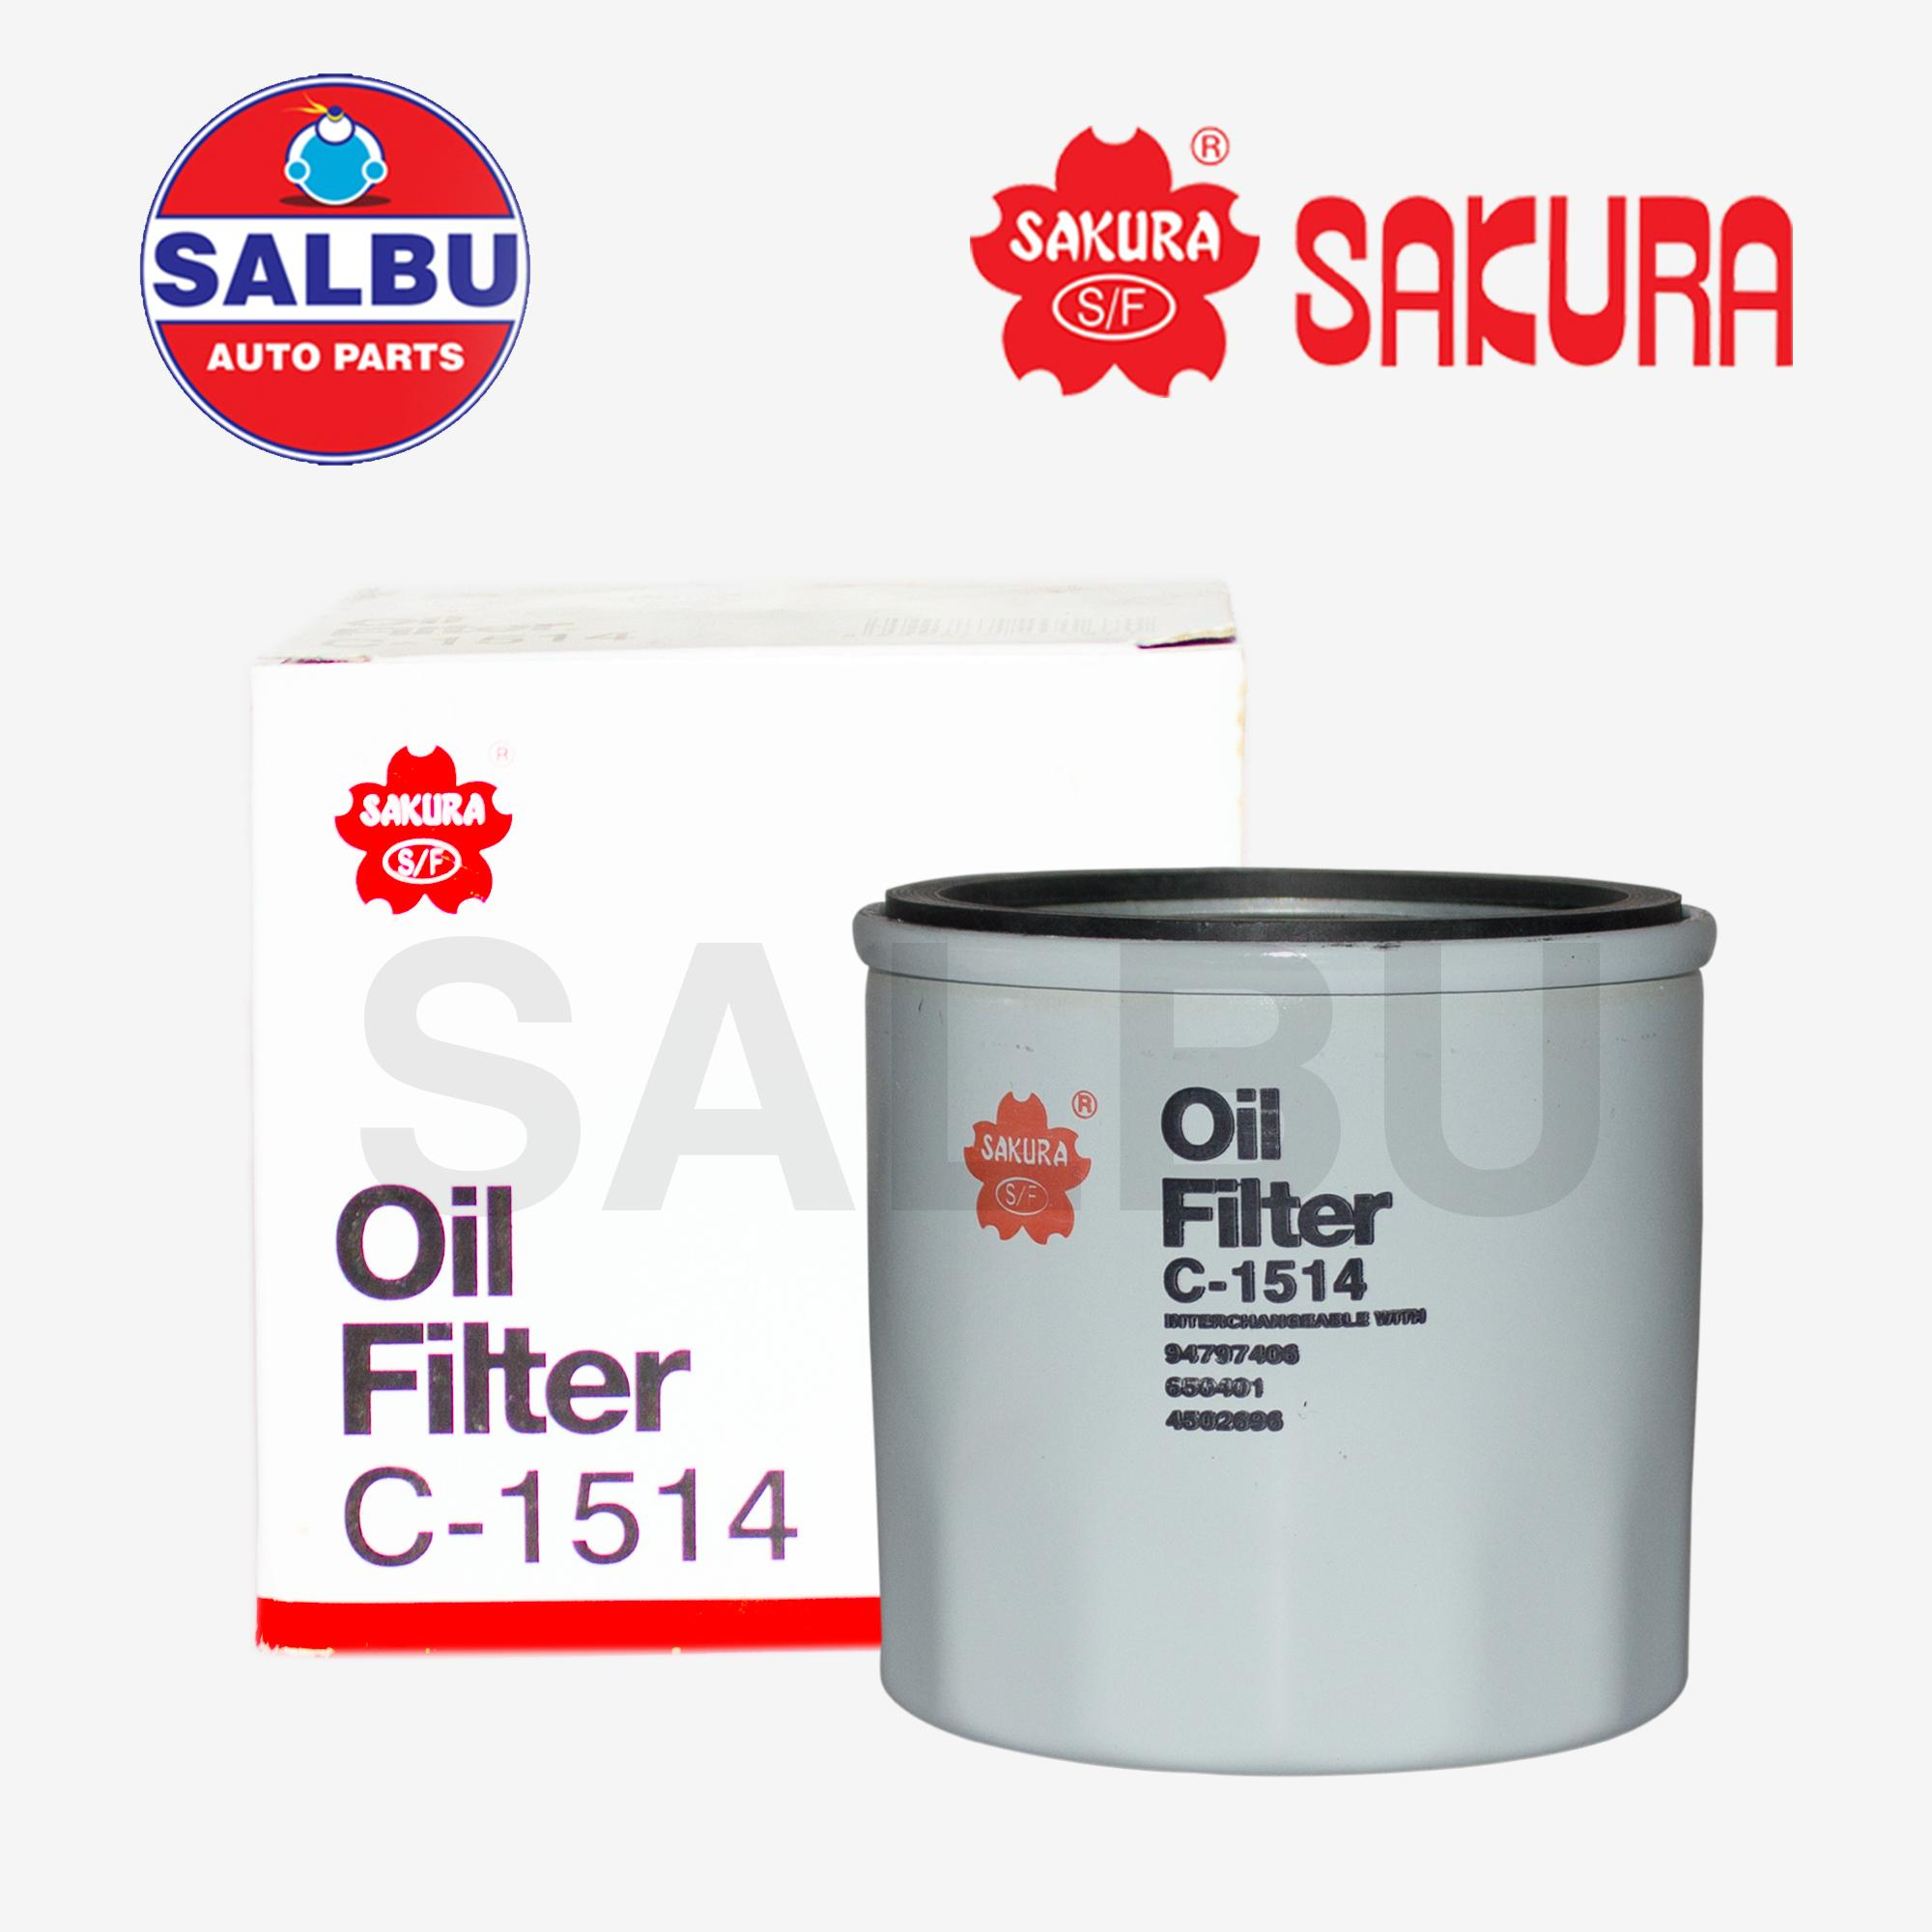 Oil Filter For Sale Adapter Online Brands Prices 4 Wheeler Fuel Sakura C 1514 Chevrolet Aveo And Optra